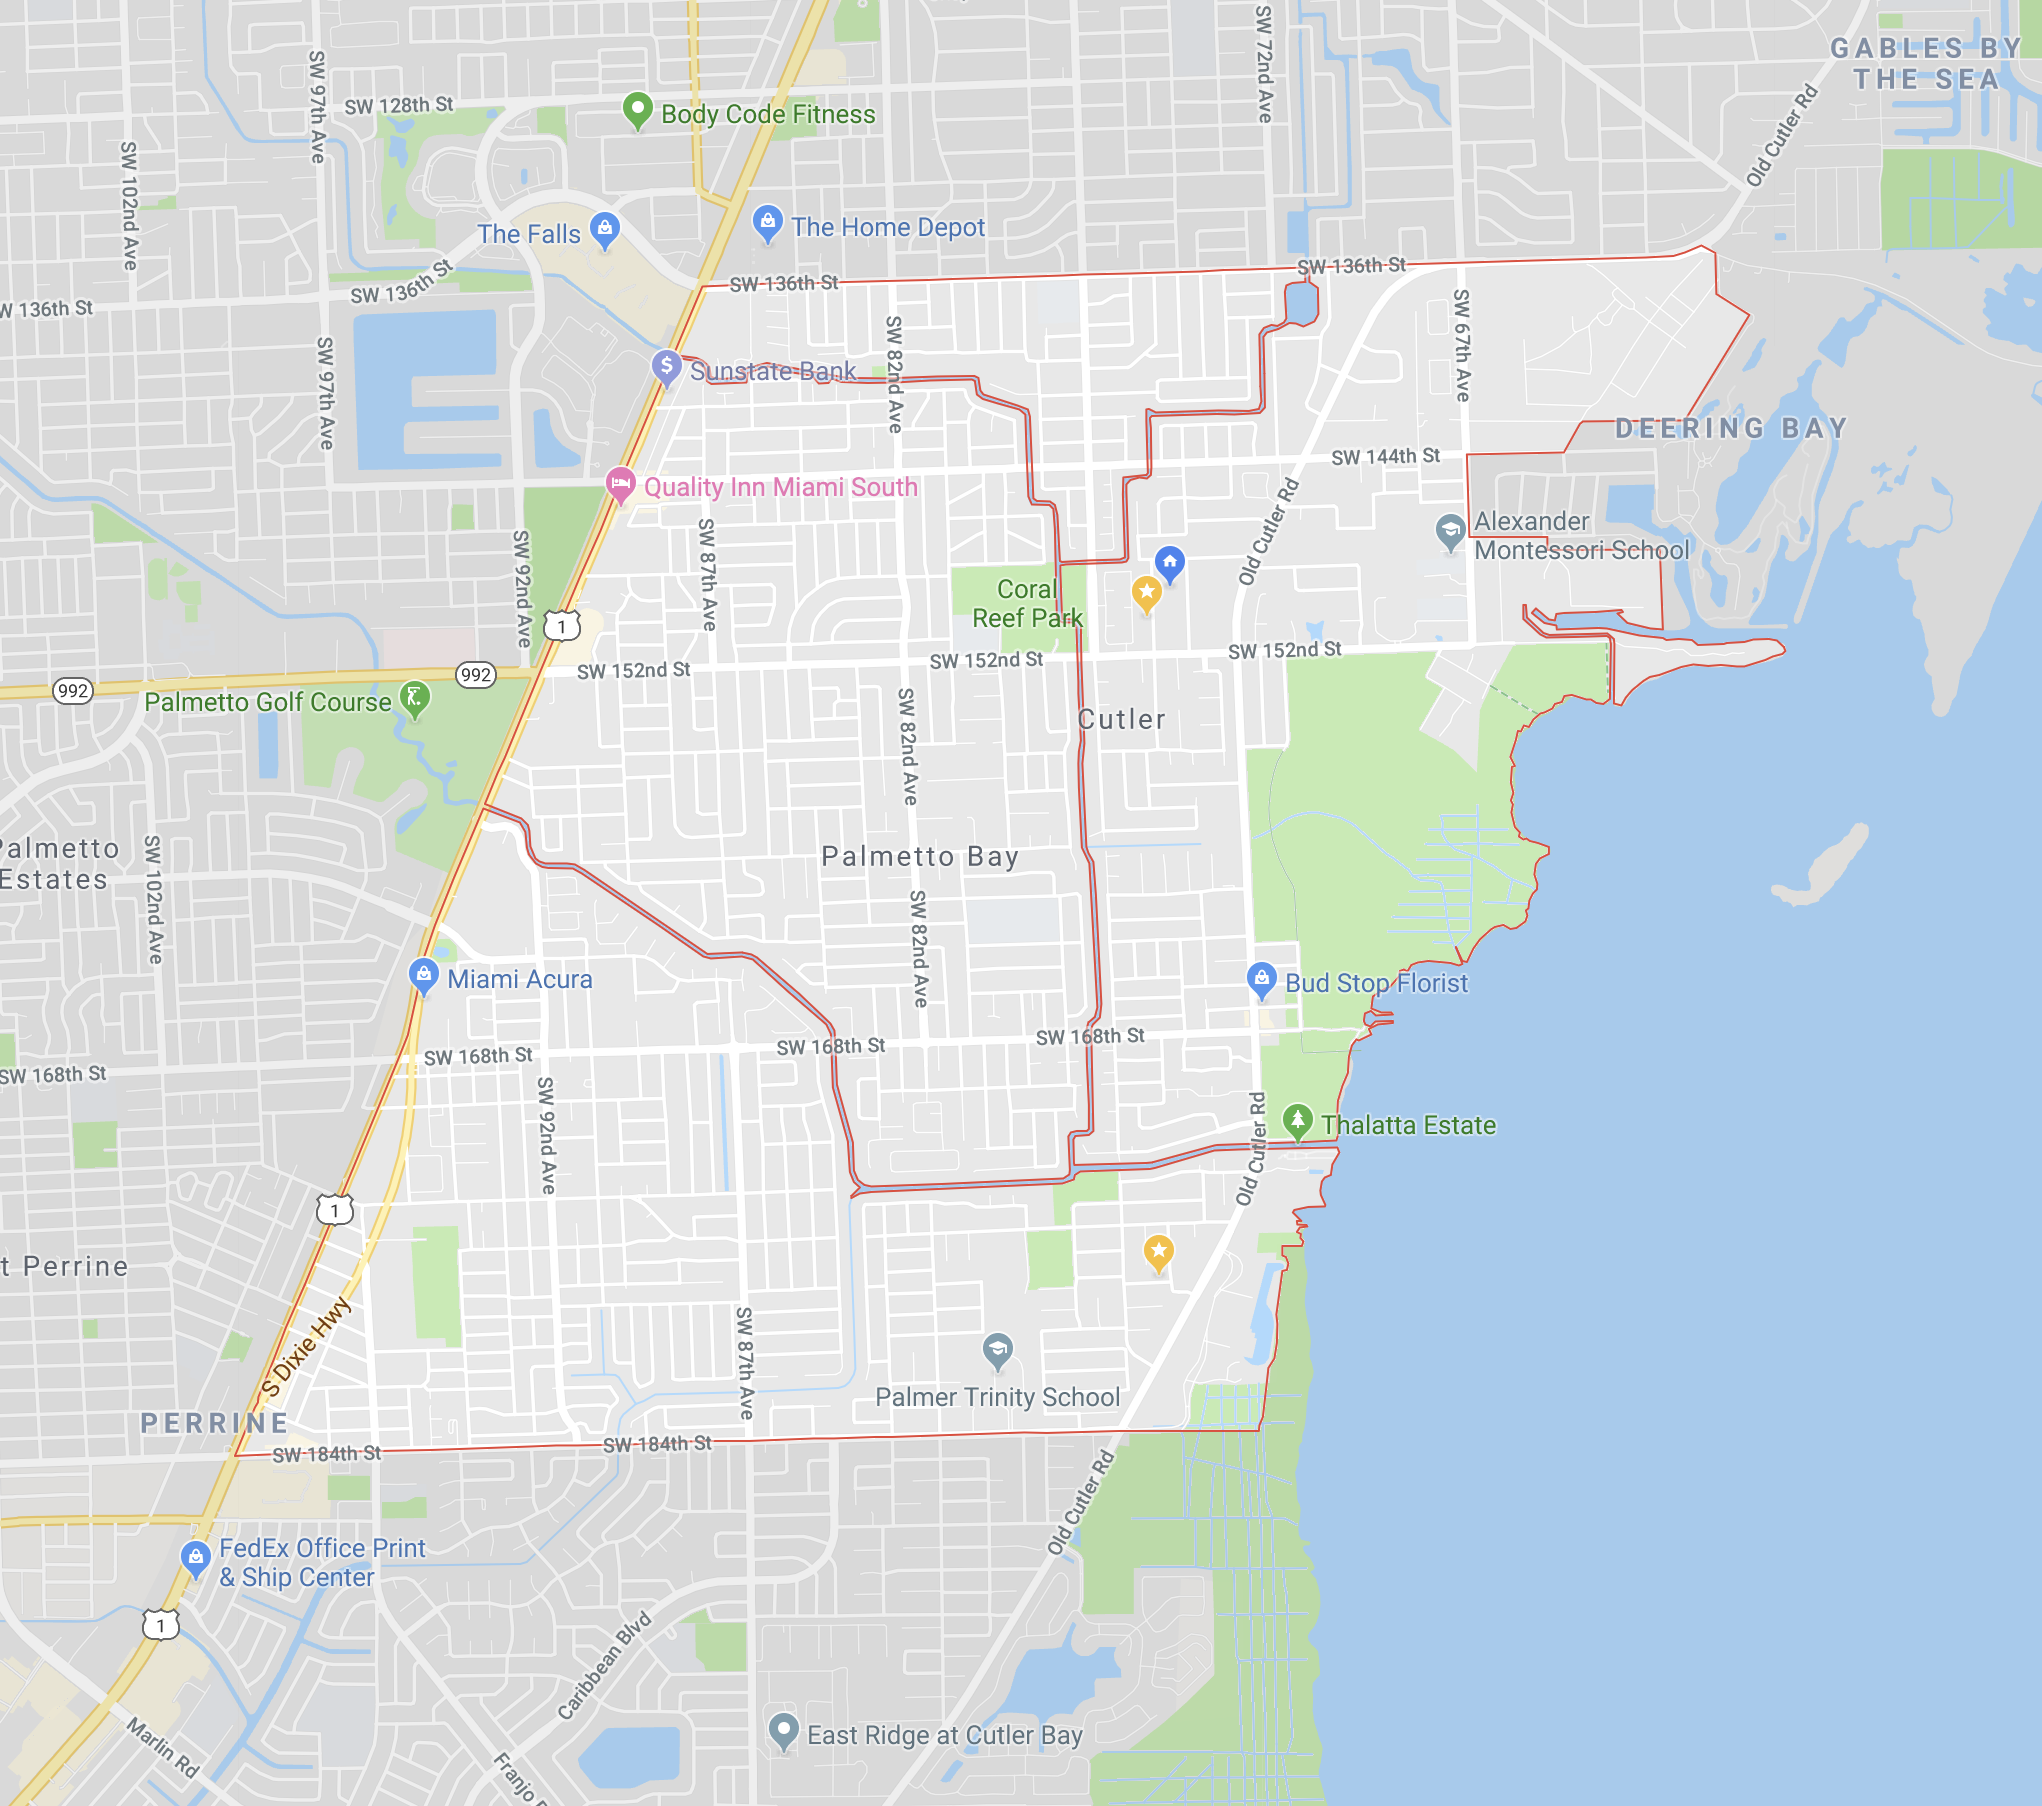 Palmetto Bay is essentially the area East of US-1, South of SW 136th Street and North of SW 184th Street (Click to enlarge)